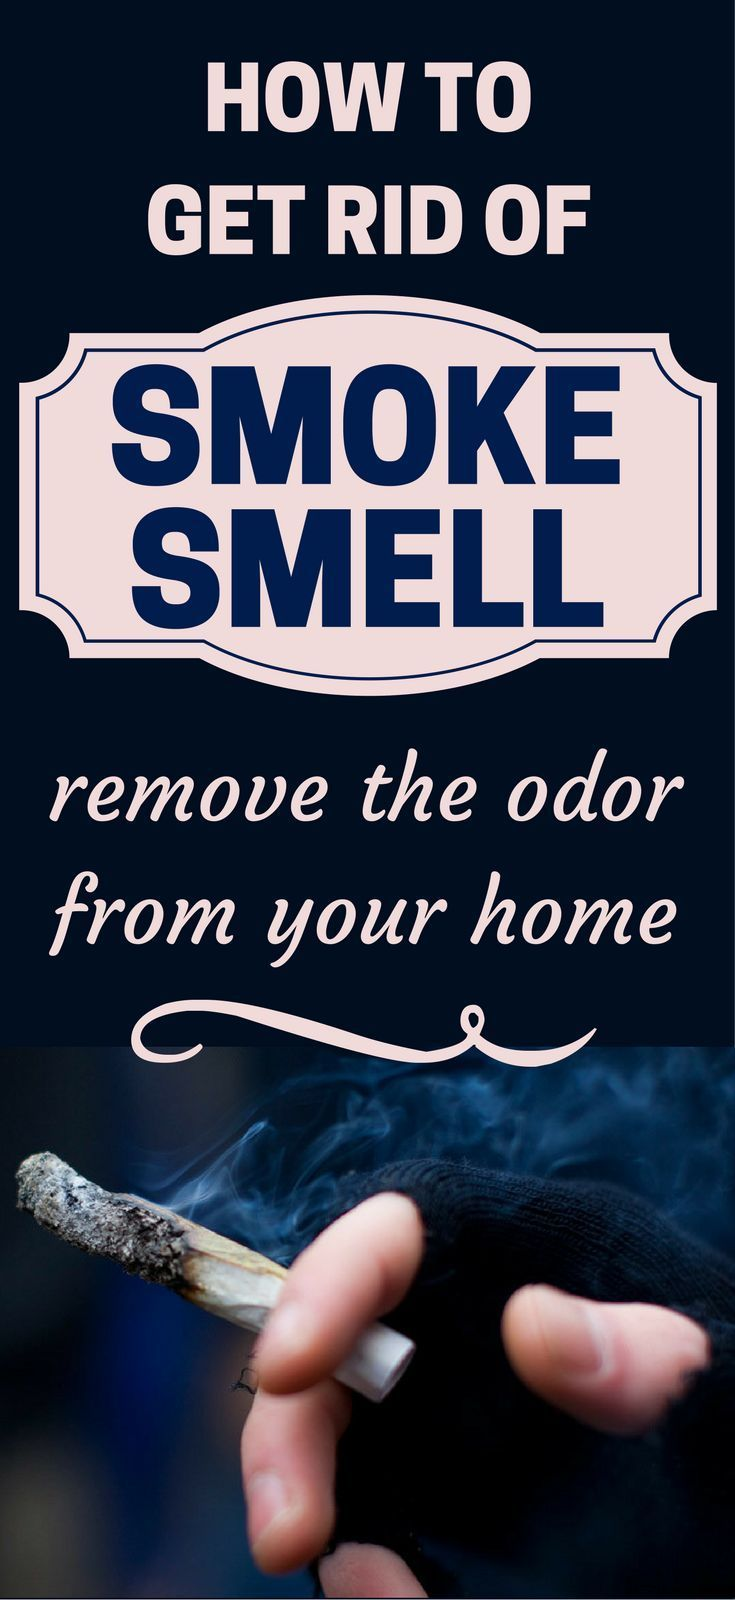 How to get rid of smoke smell remove the odor from your